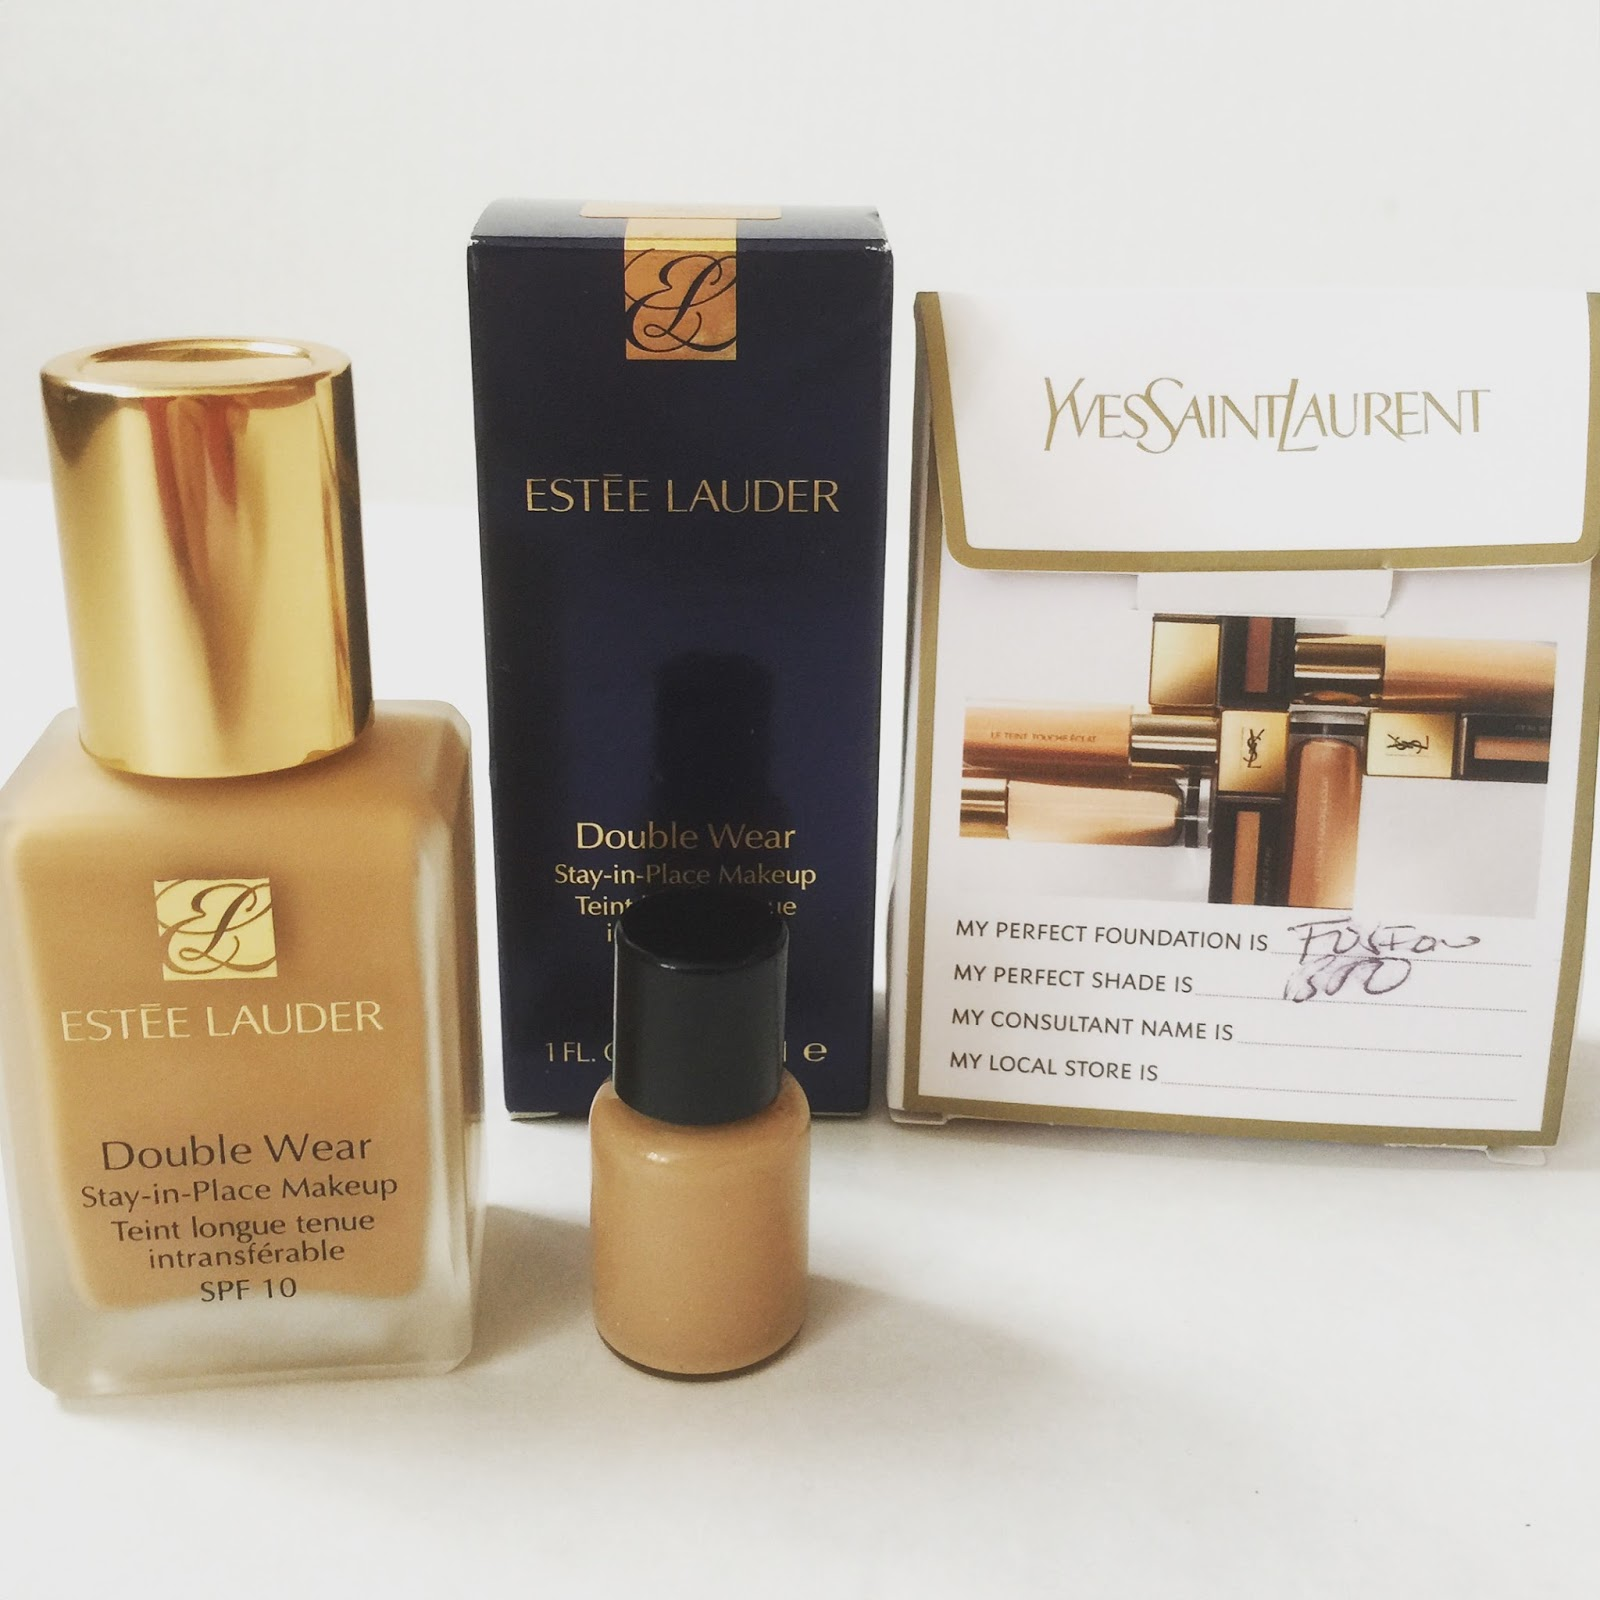 Yves Saint Laurent Fusion Ink Foundation, Estee Lauder Double Wear Stay-in-Place Makeup SPF10